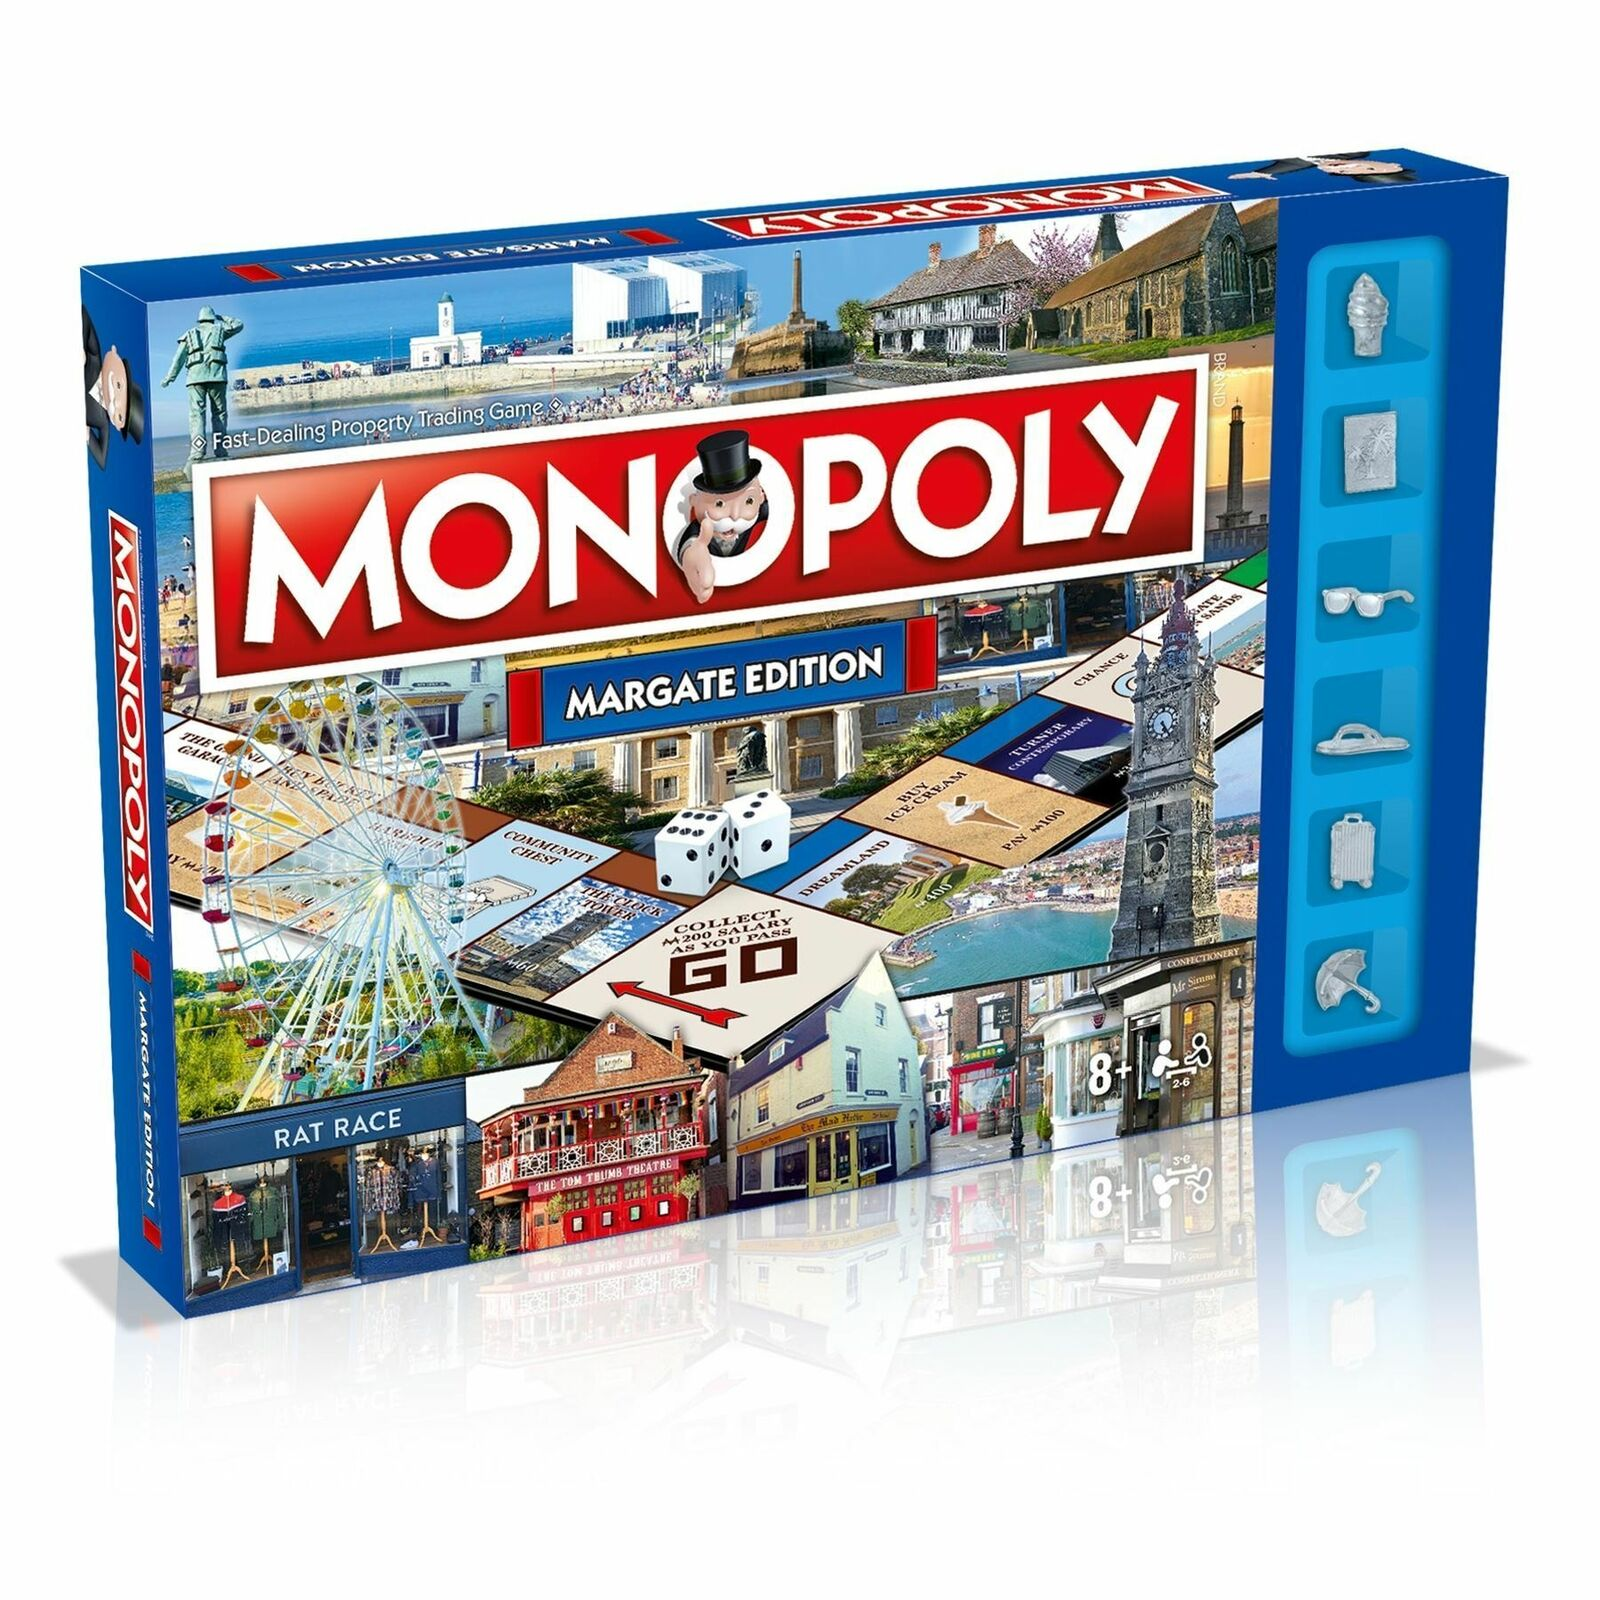 Margate Edition Edition Edition Monopoly Property Trading Board Game d60665